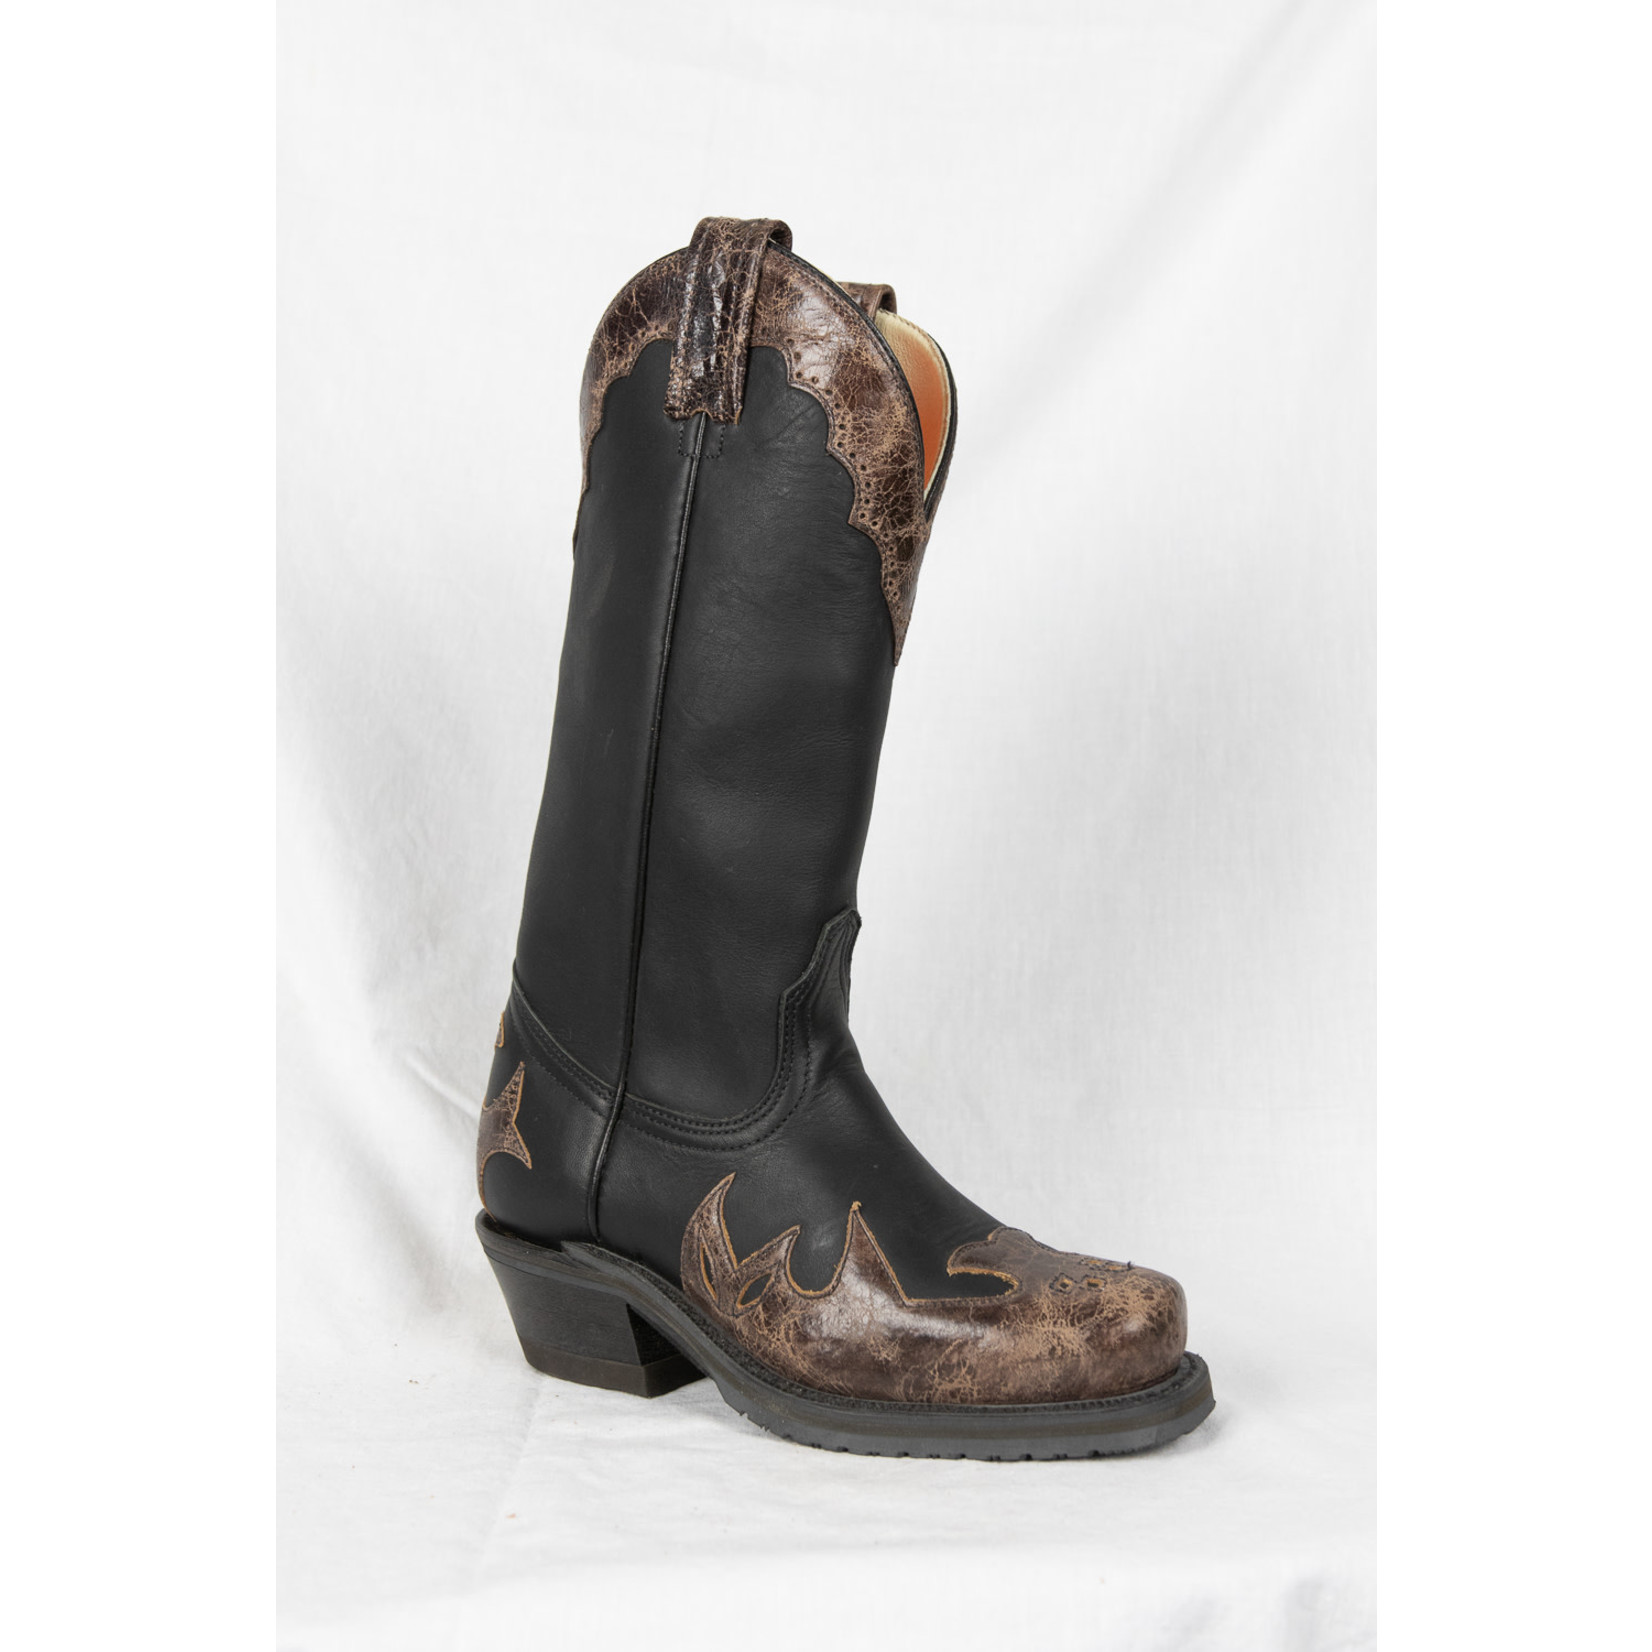 Canada West Canada West Womens Black Brown Square Toe 7629-1